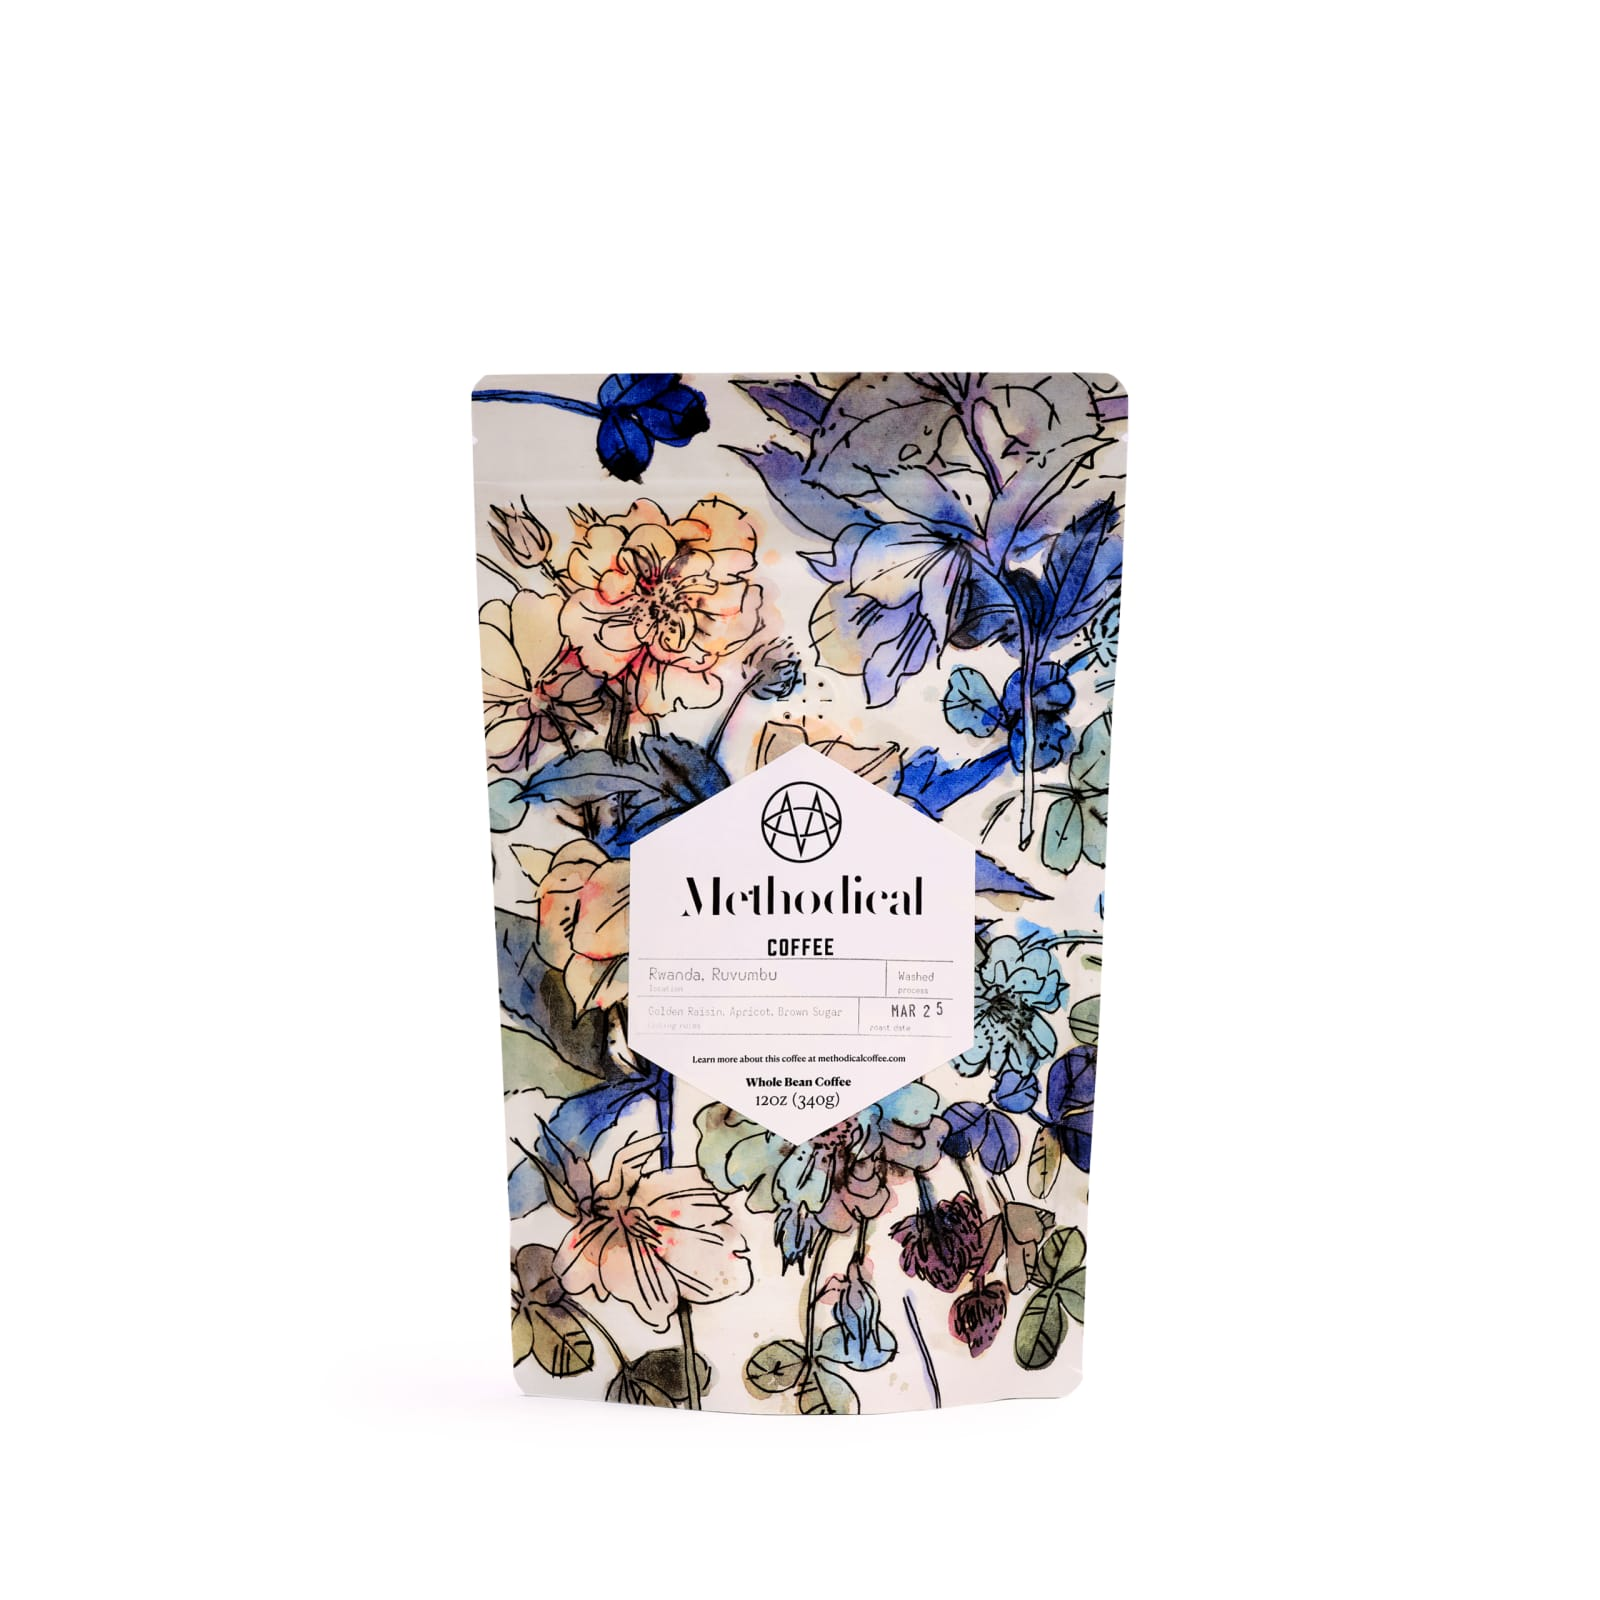 Methodical Rwanda Ruvumbu coffee bag